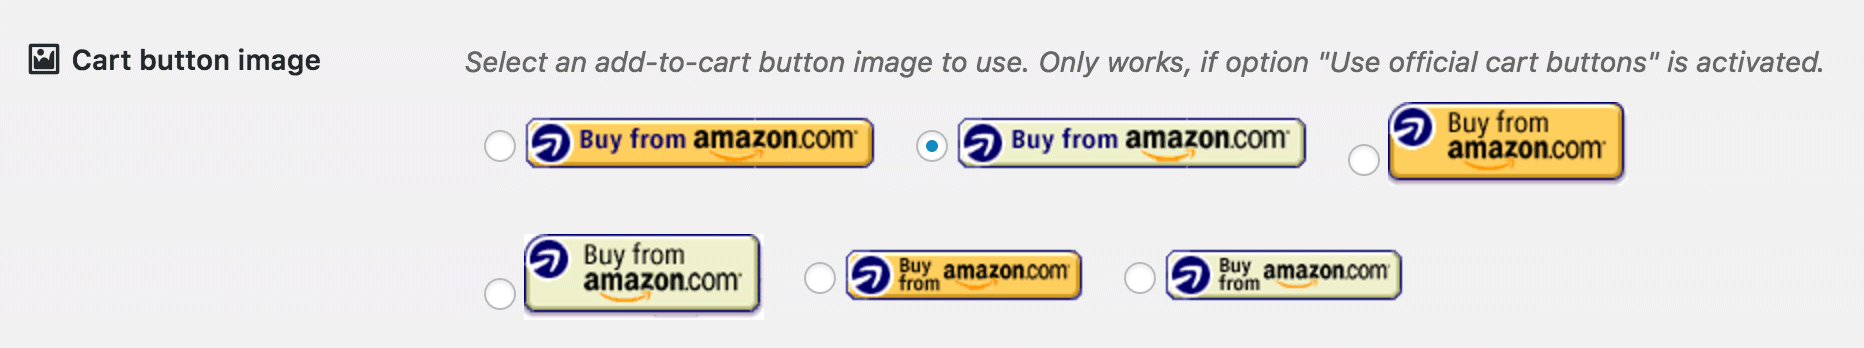 Select add-to-cart button image